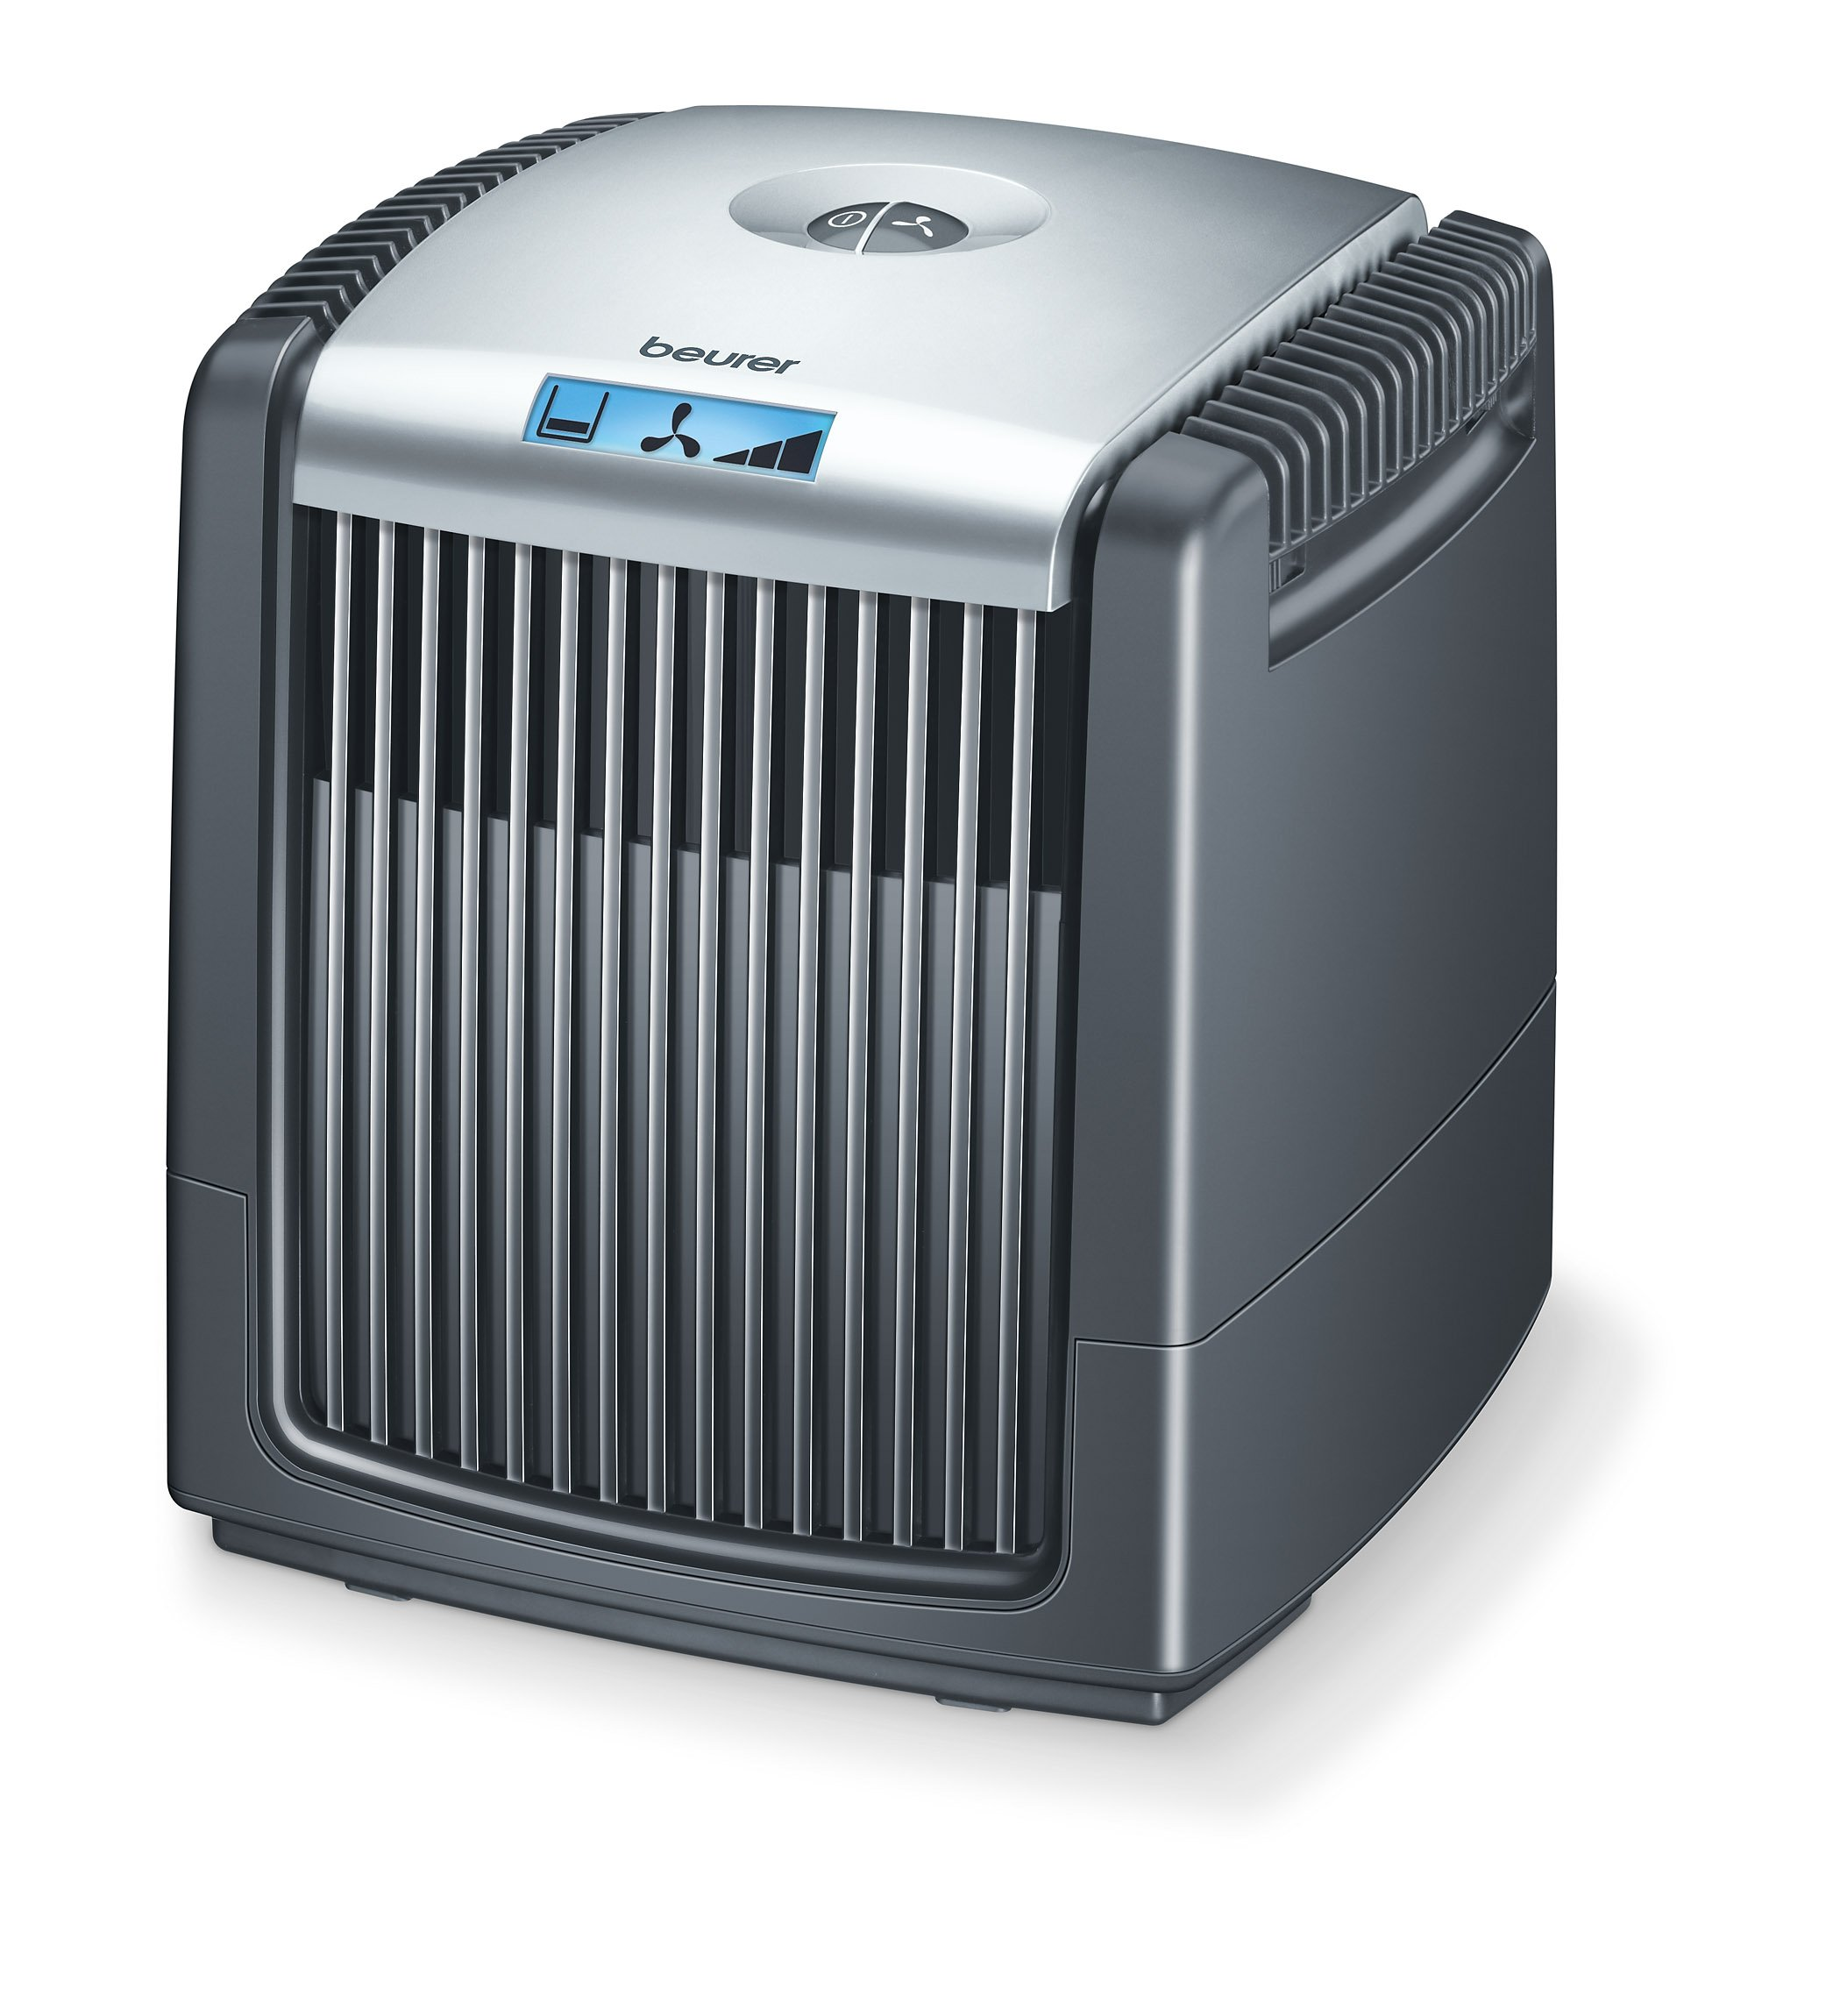 Beurer Air Purifier and Humidifier, With Washable Filter, LW110 by Beurer North America